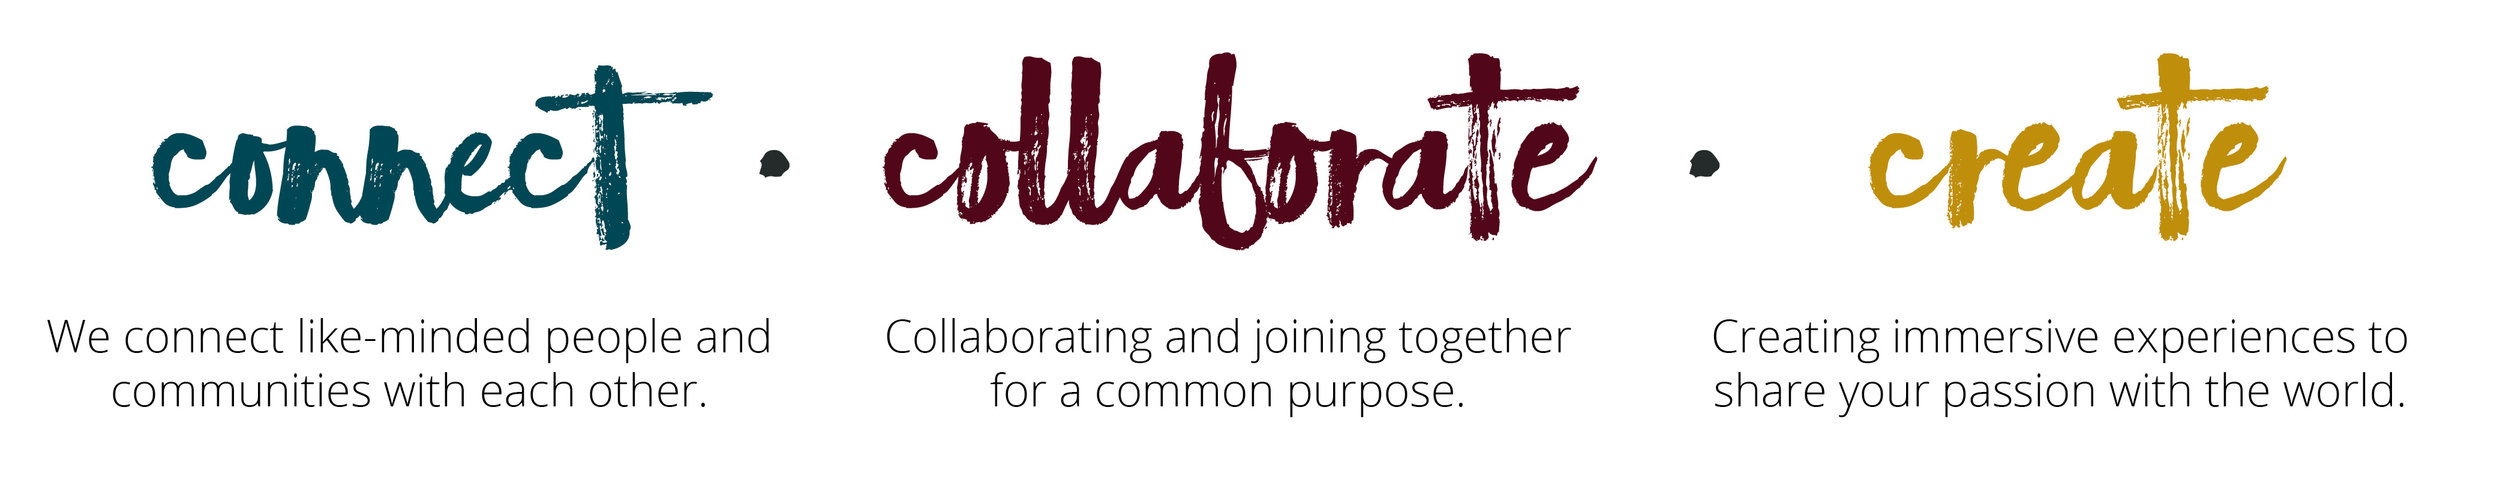 connect collaborate create slogan with words.jpg